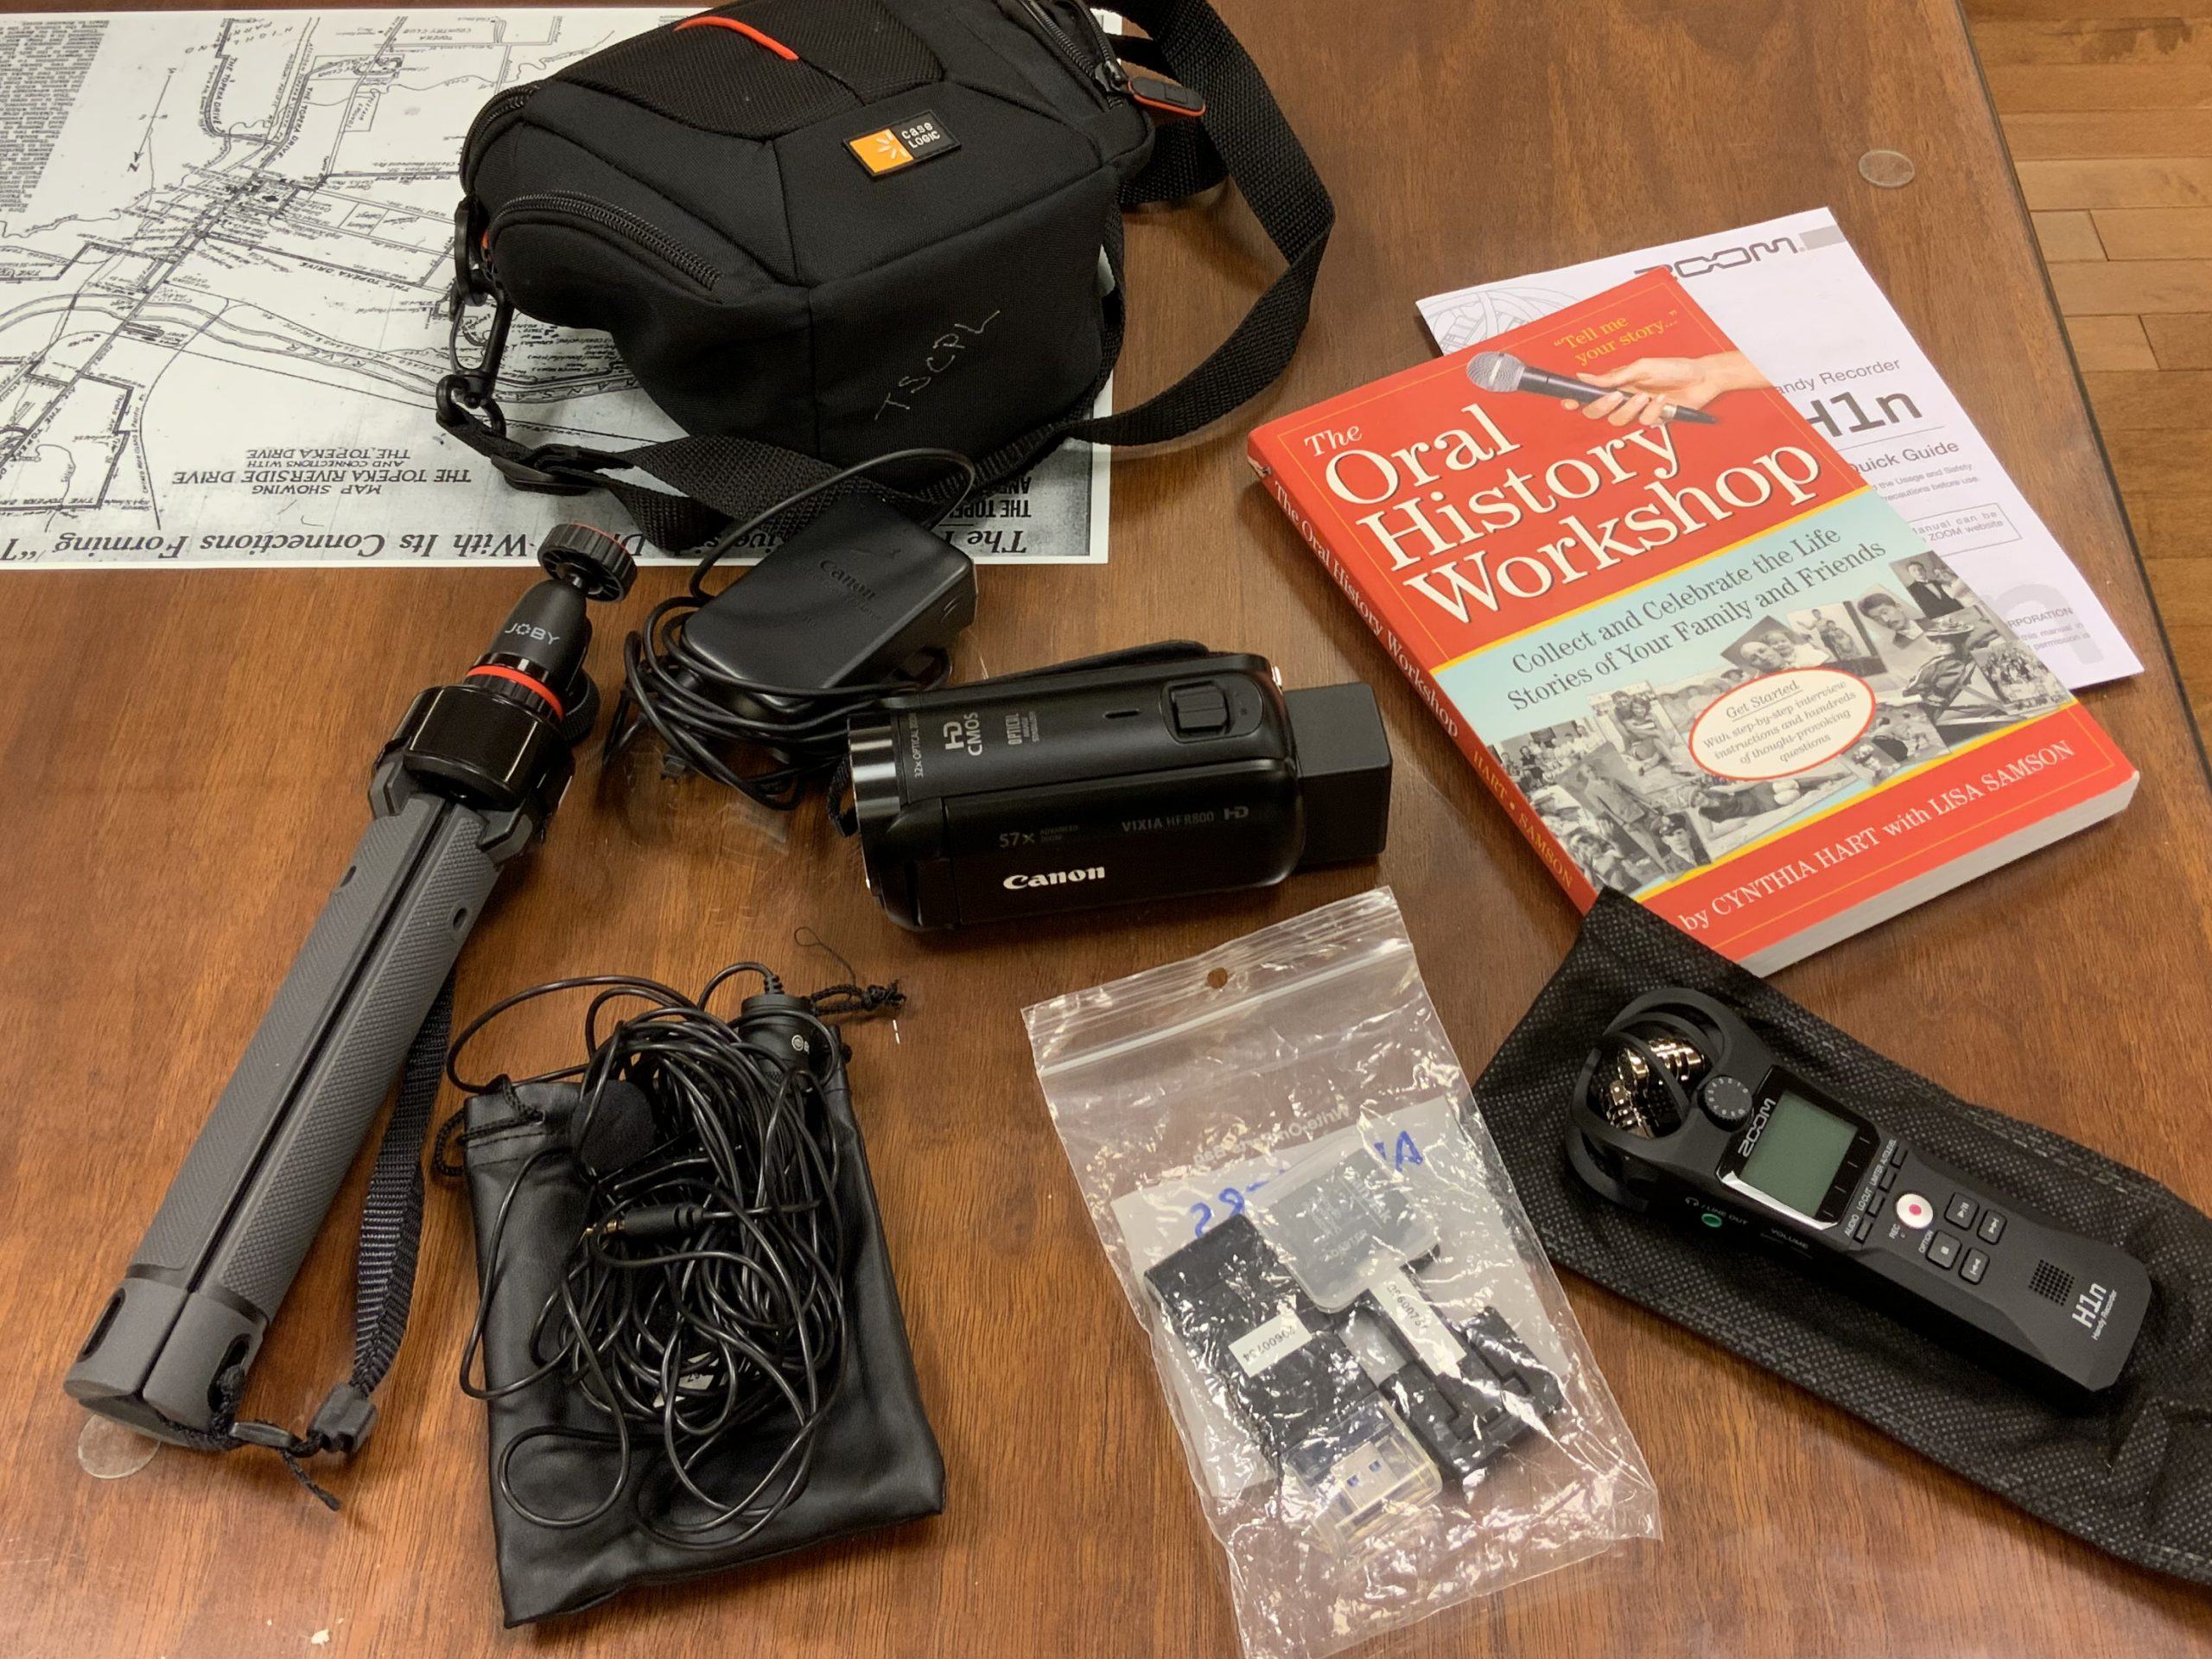 Shows the contents of the Libraries Oral History Kit